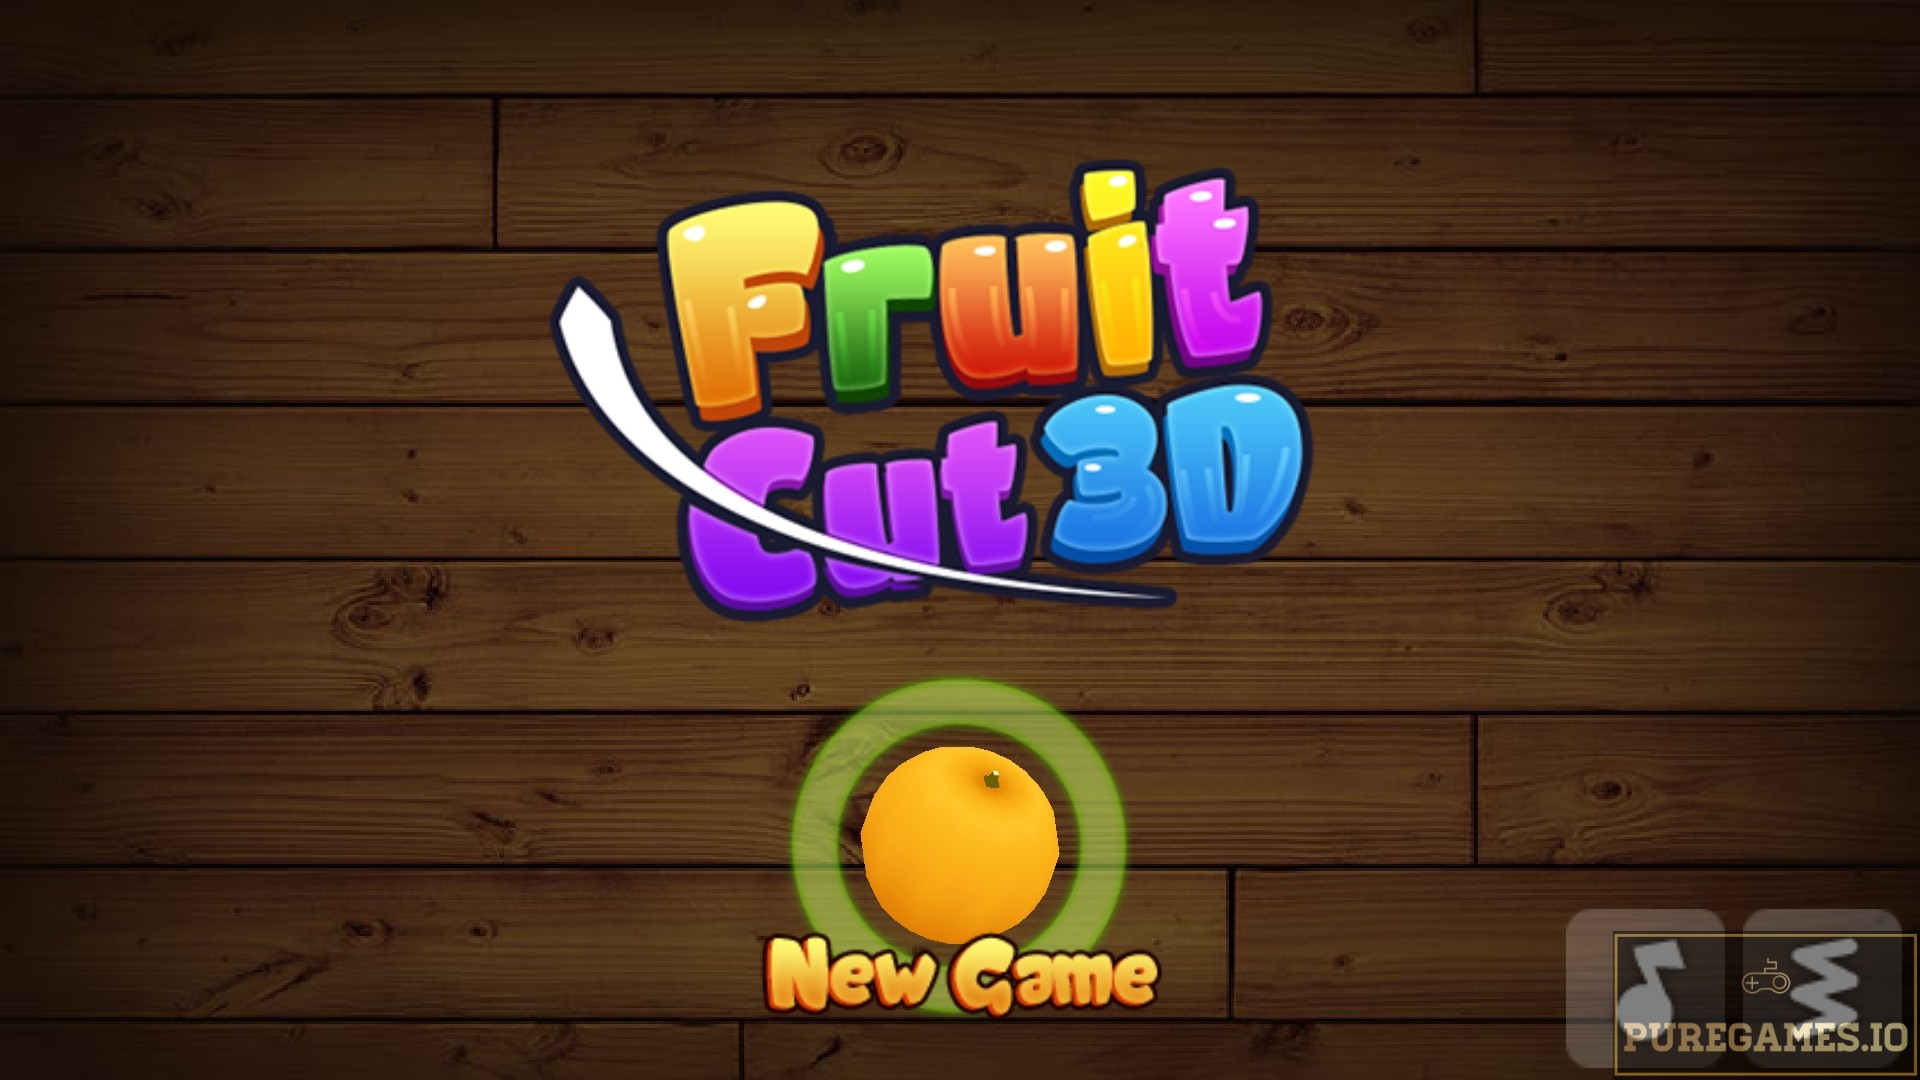 Download Fruit Cut 3D MOD APK - For Android/iOS 12